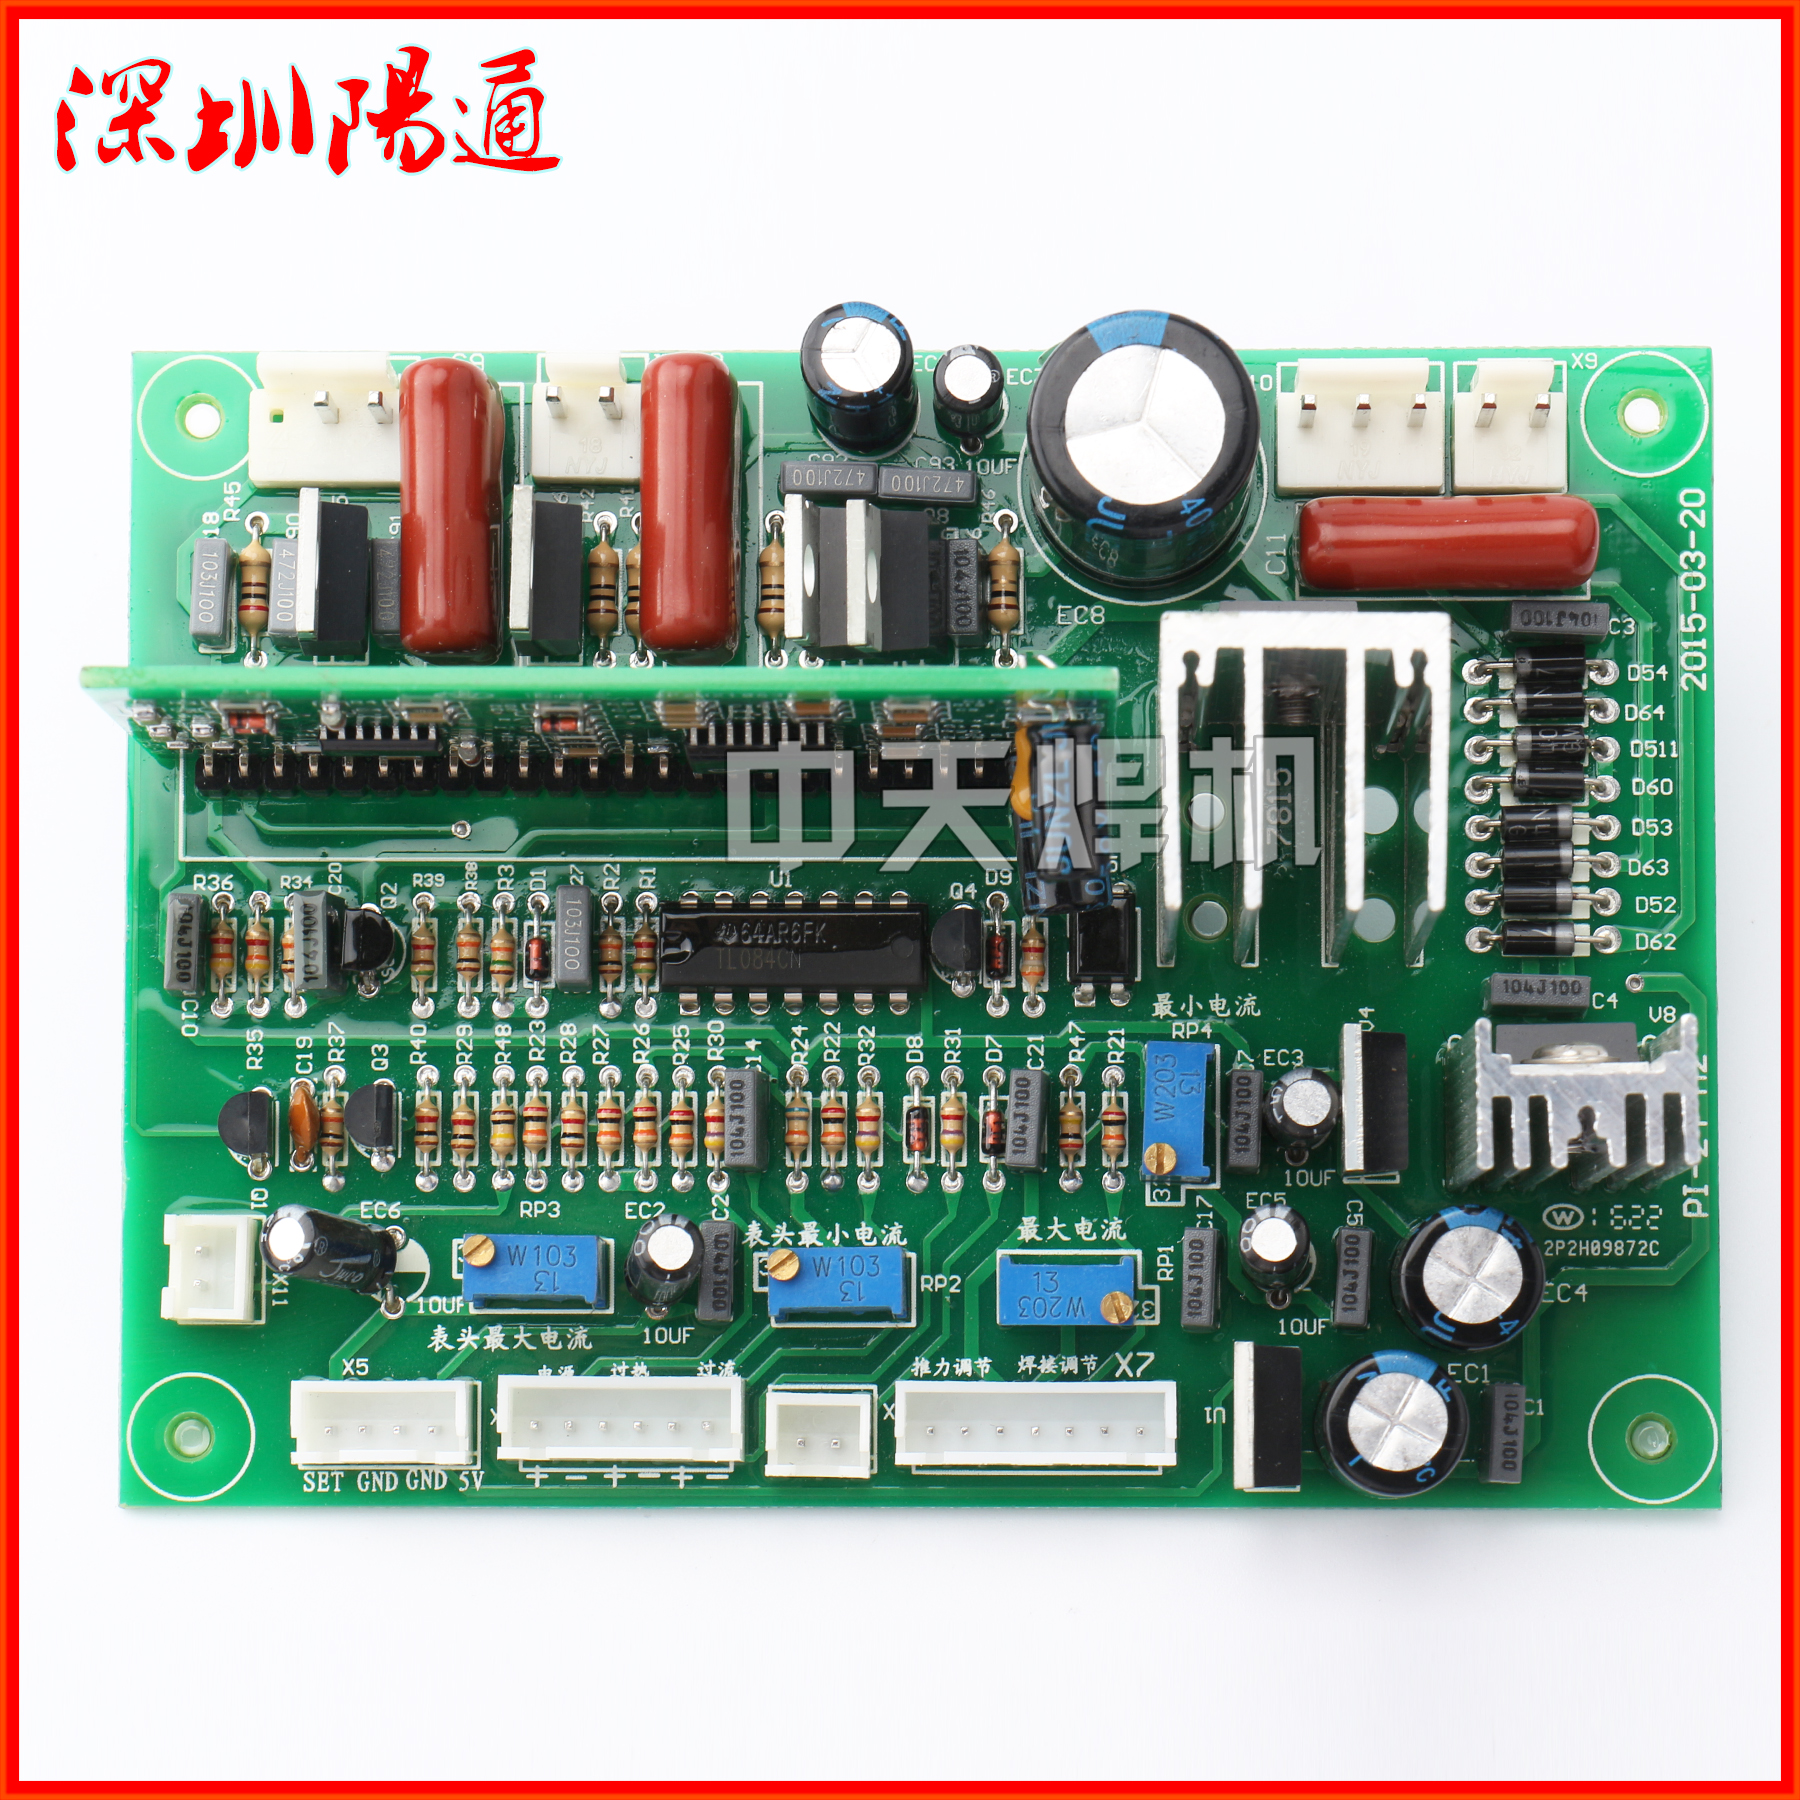 220/380V dual power supply three phase welding machine main board ZX7 400S IGBT|Building Automation| |  - title=